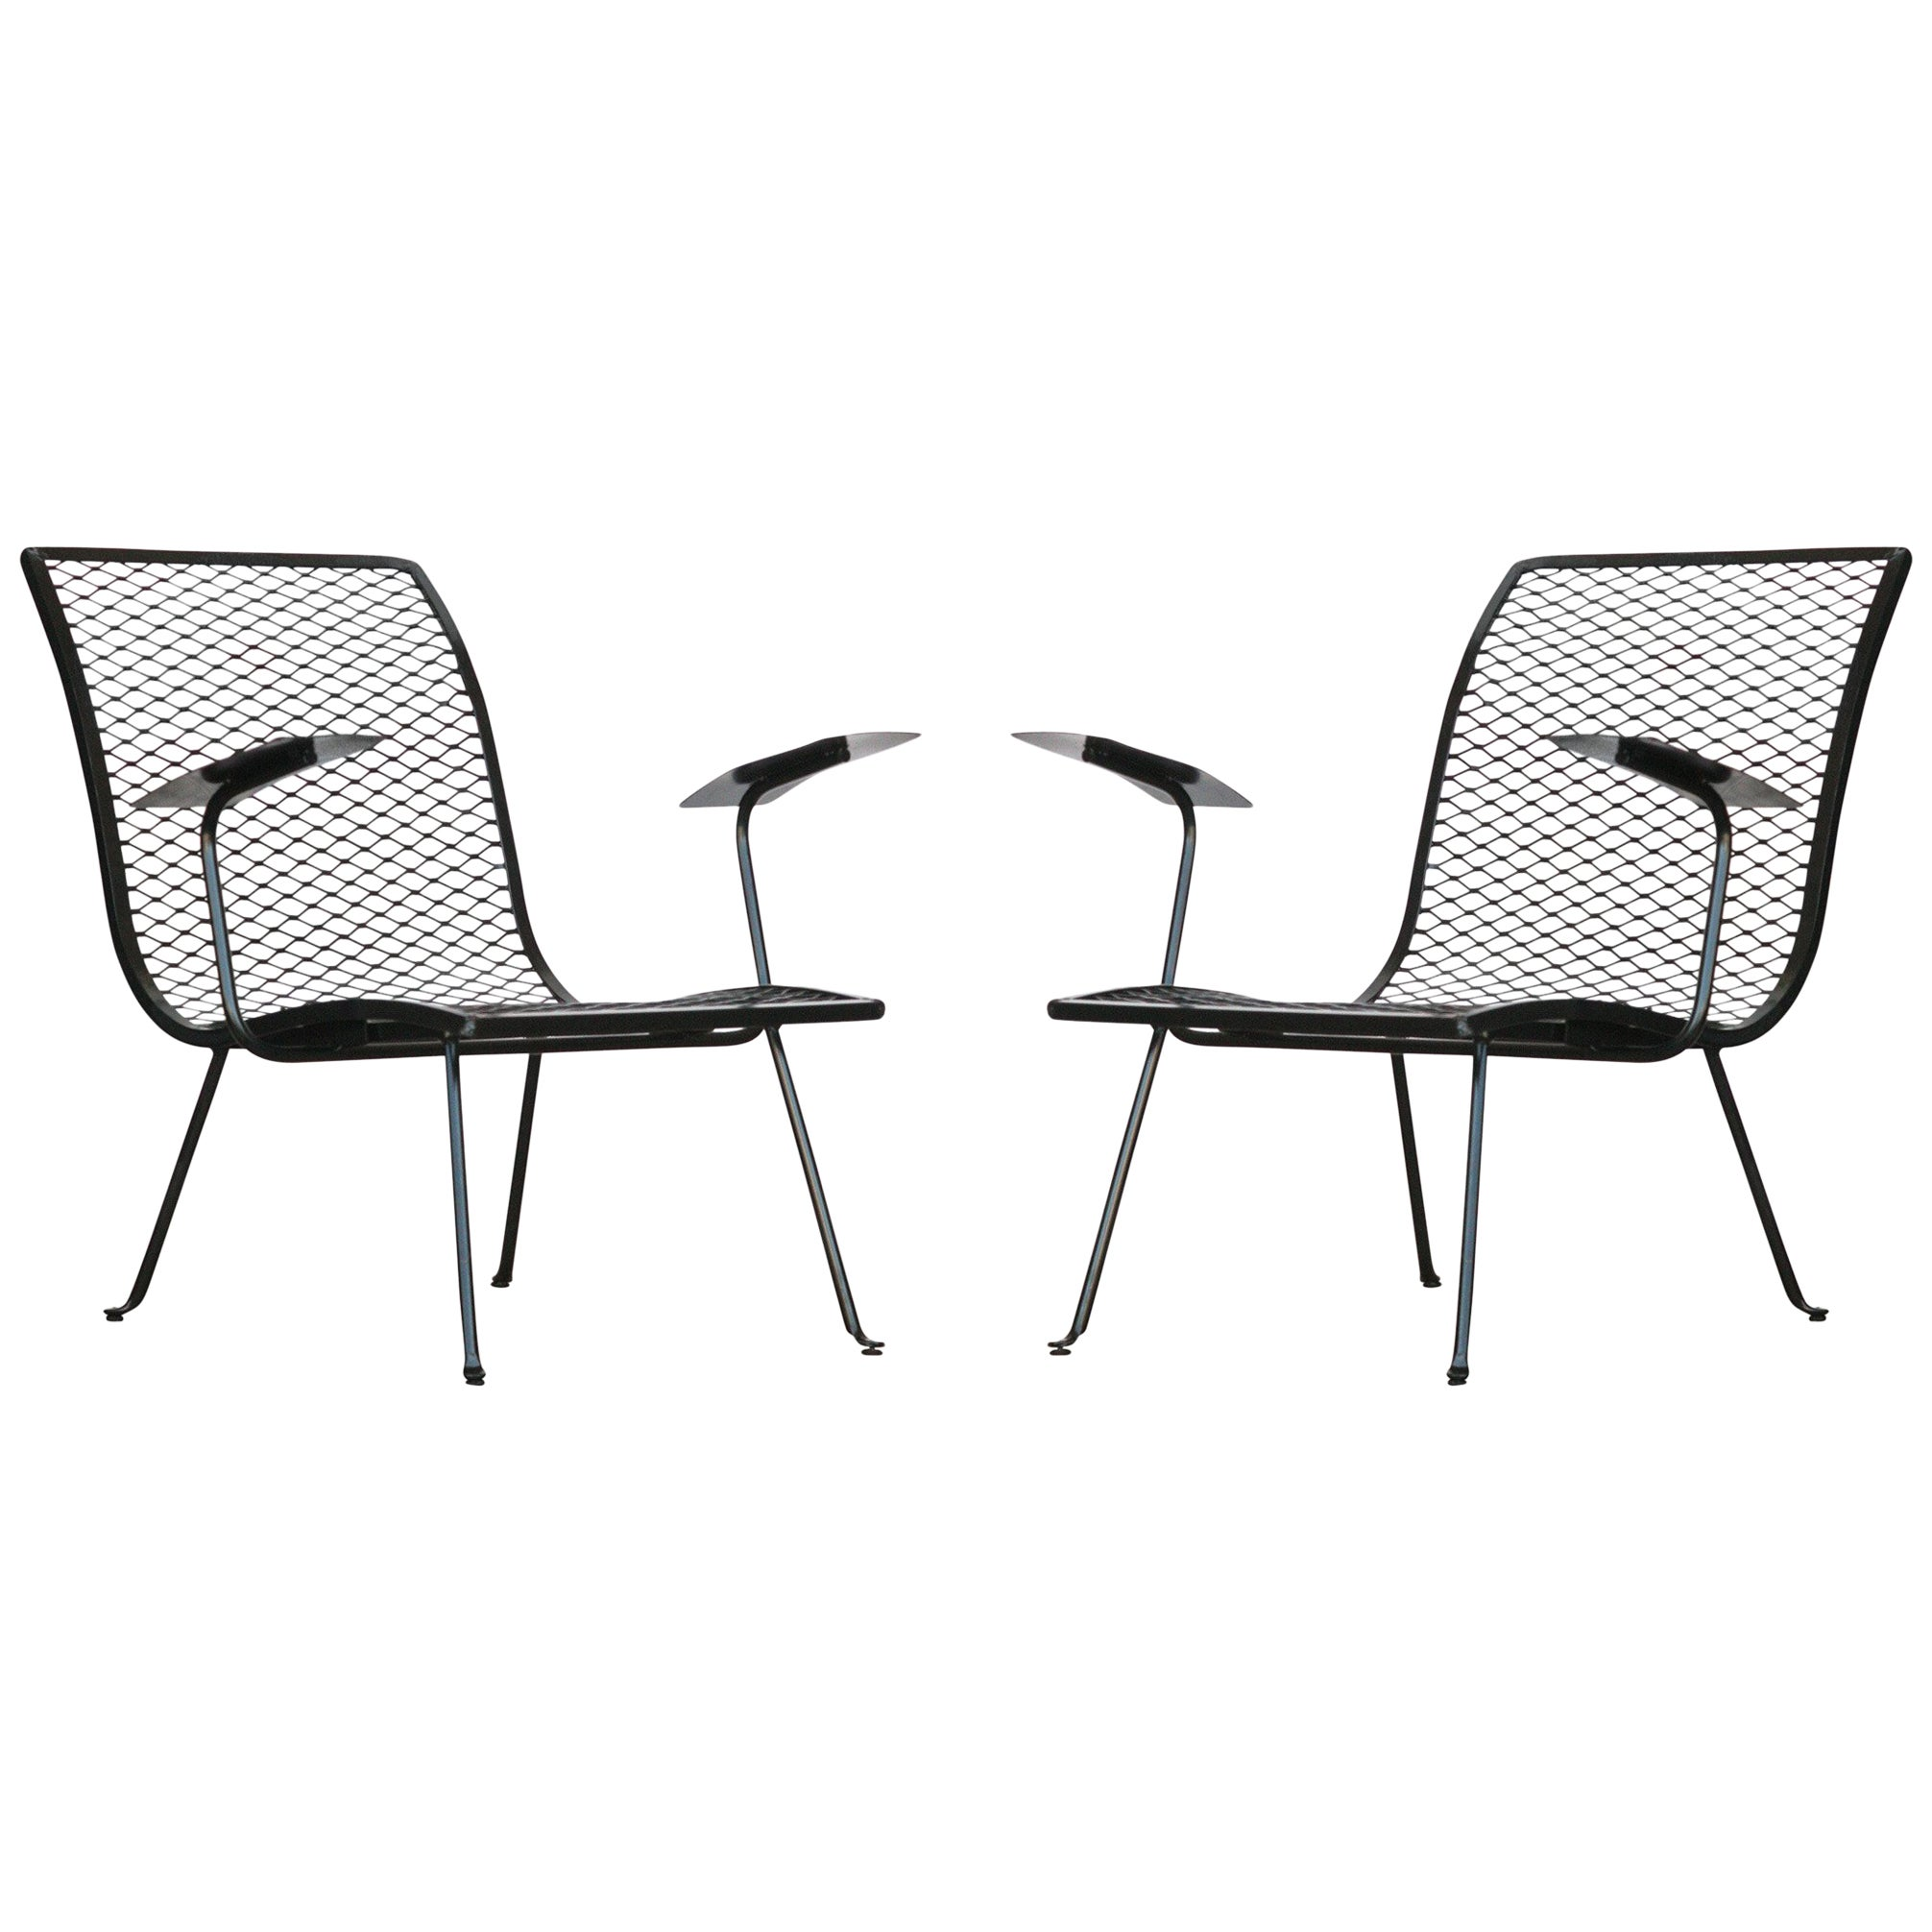 Studio Chairs Pair Of Outdoor Lounge Chairs By Karl Lightfoot Studio